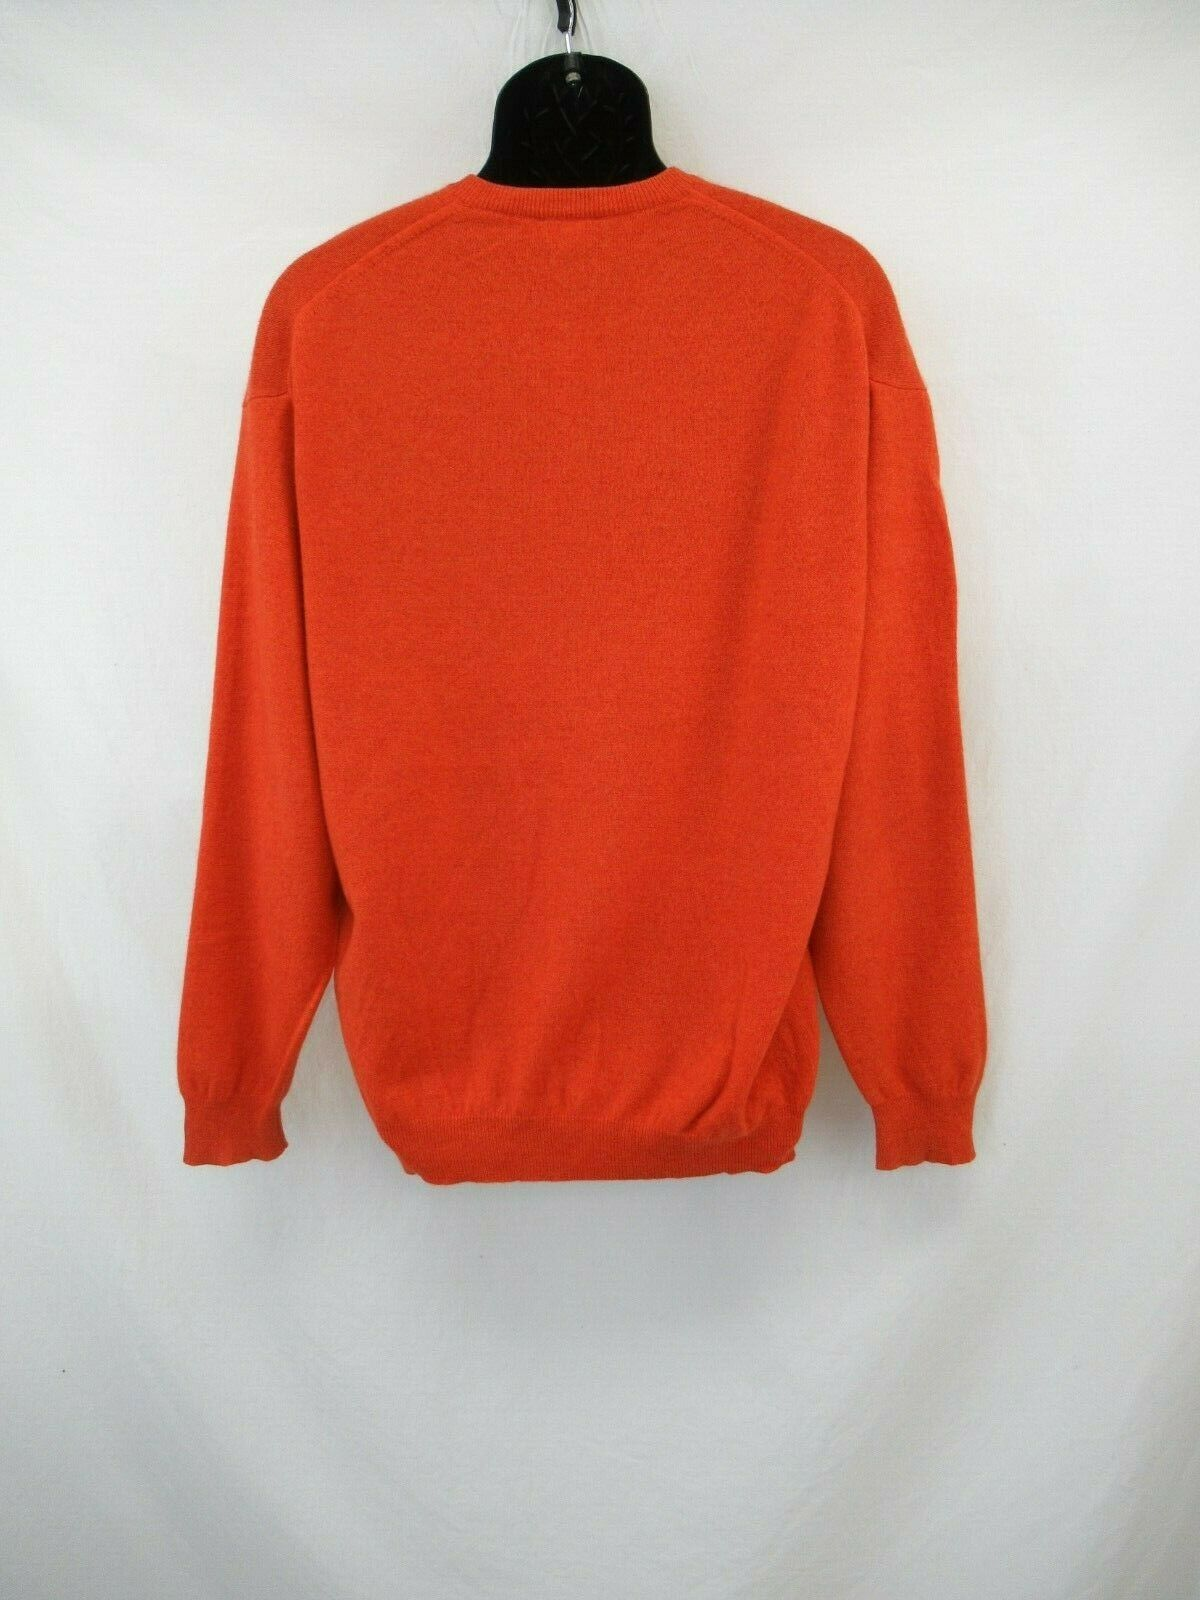 Paul Simon Men's 100% Cashmere Orange V-Neck Swea… - image 2